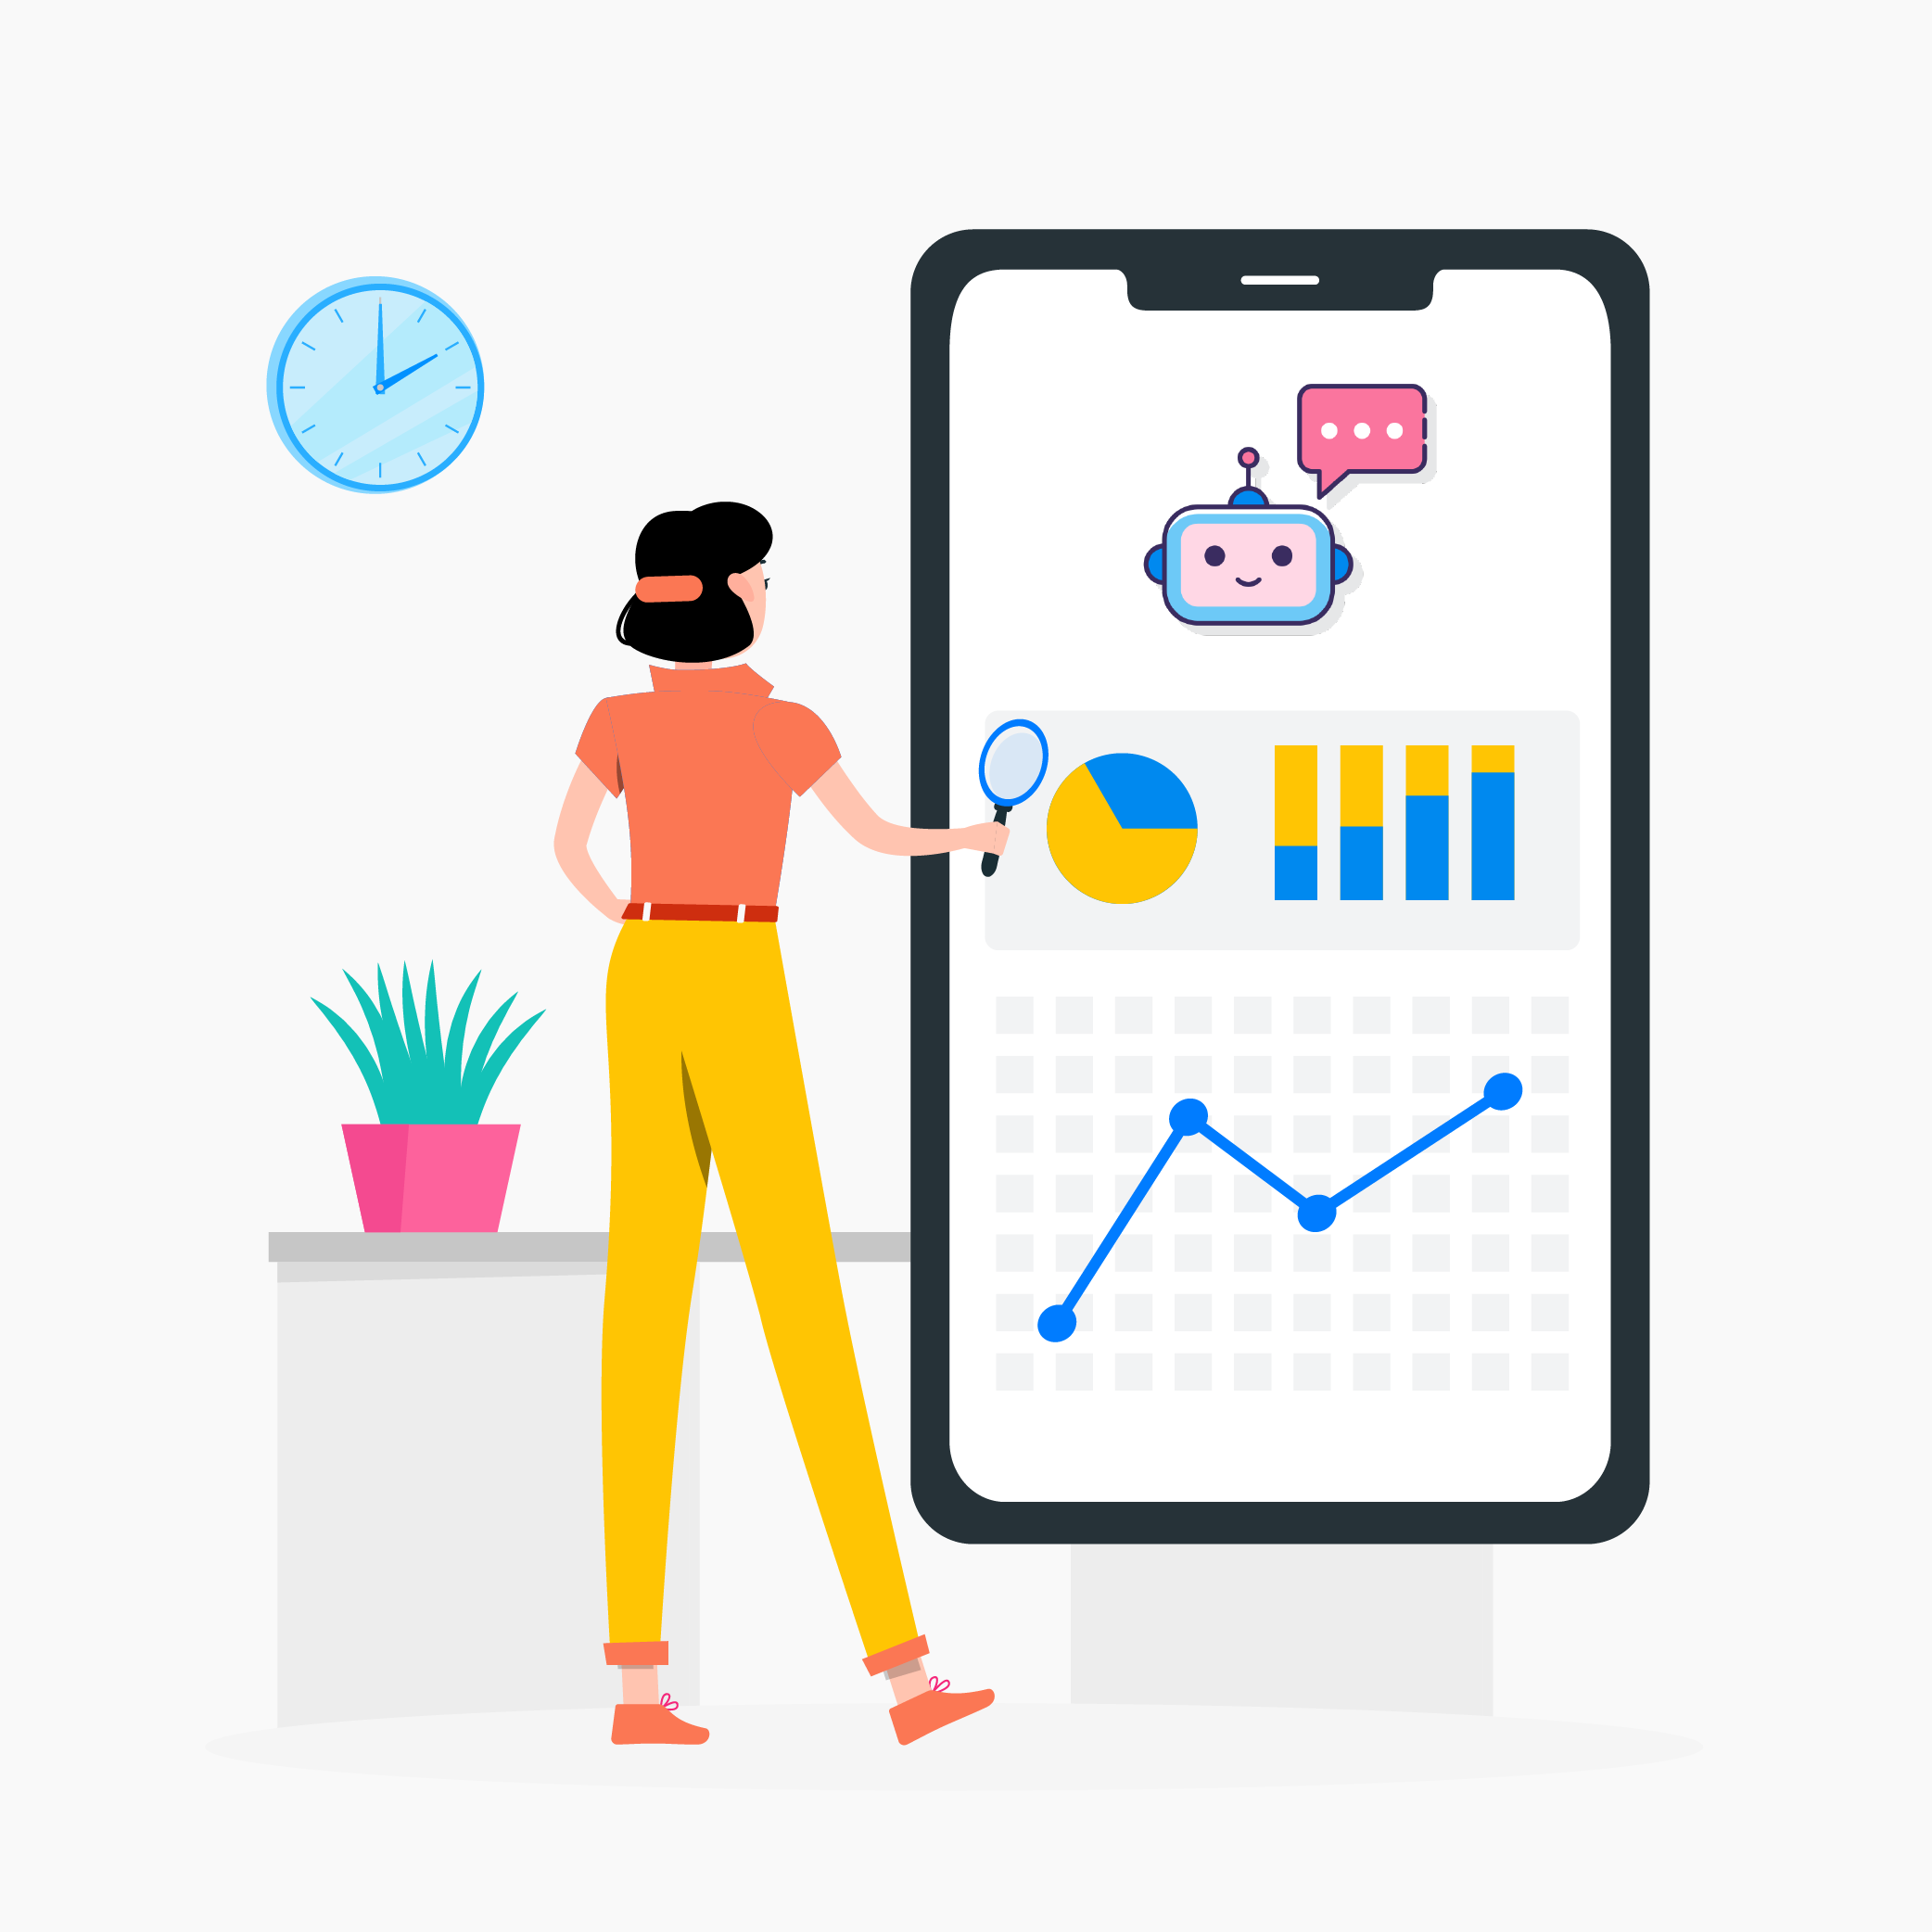 Key Metrics to evaluate Your Chatbot's Performance